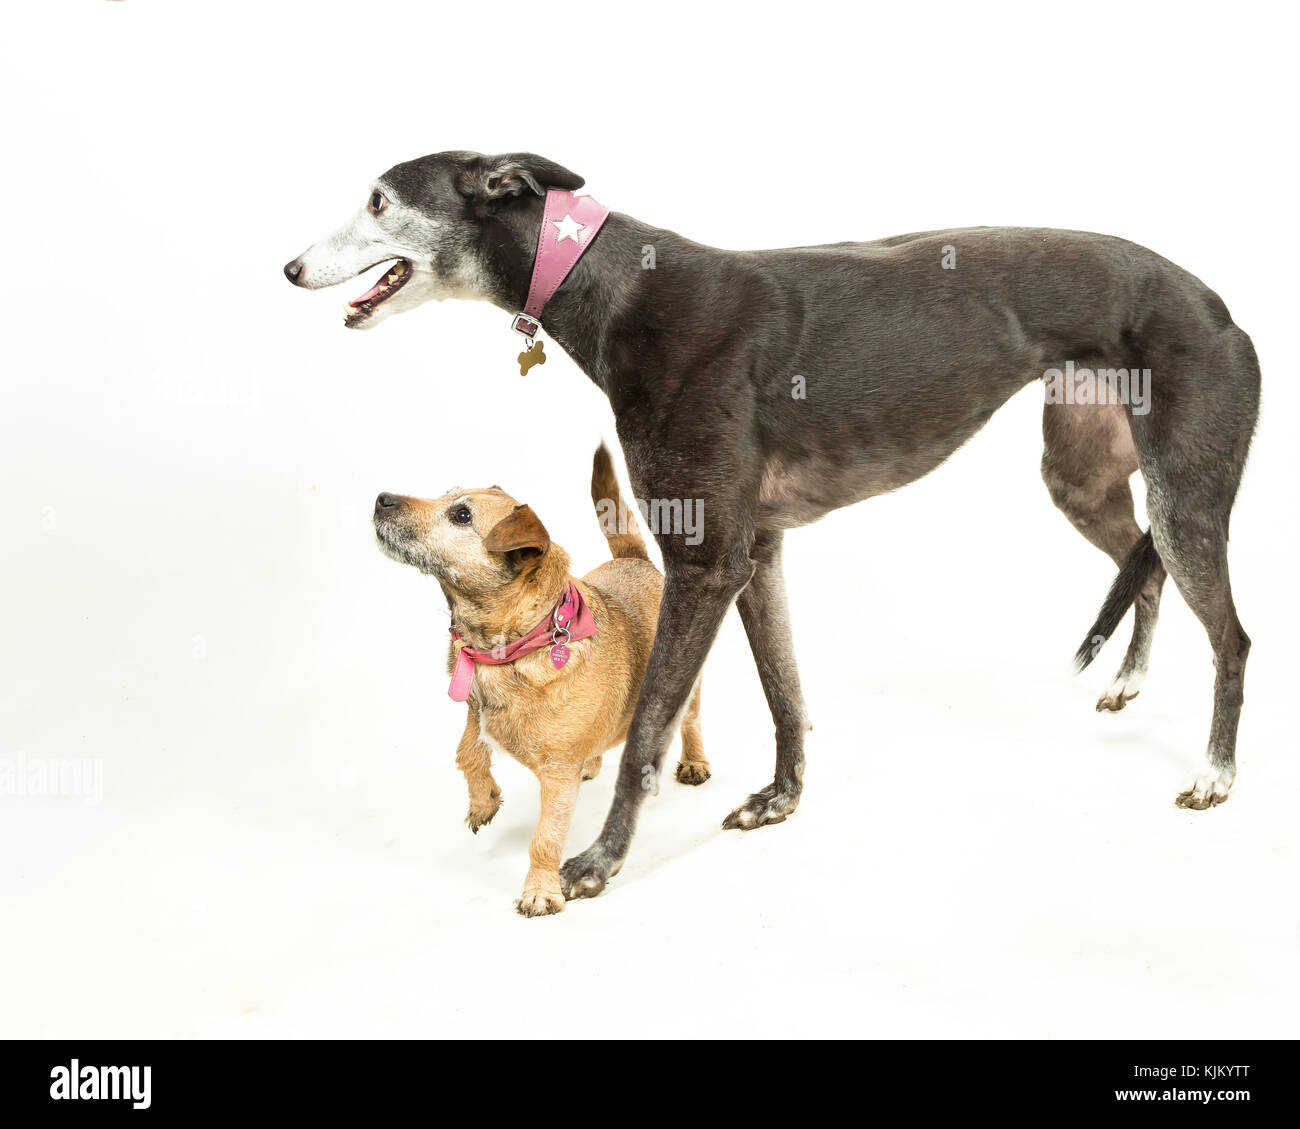 Greyhound with Jack Russell-Border Terrier on White Background - Stock Image